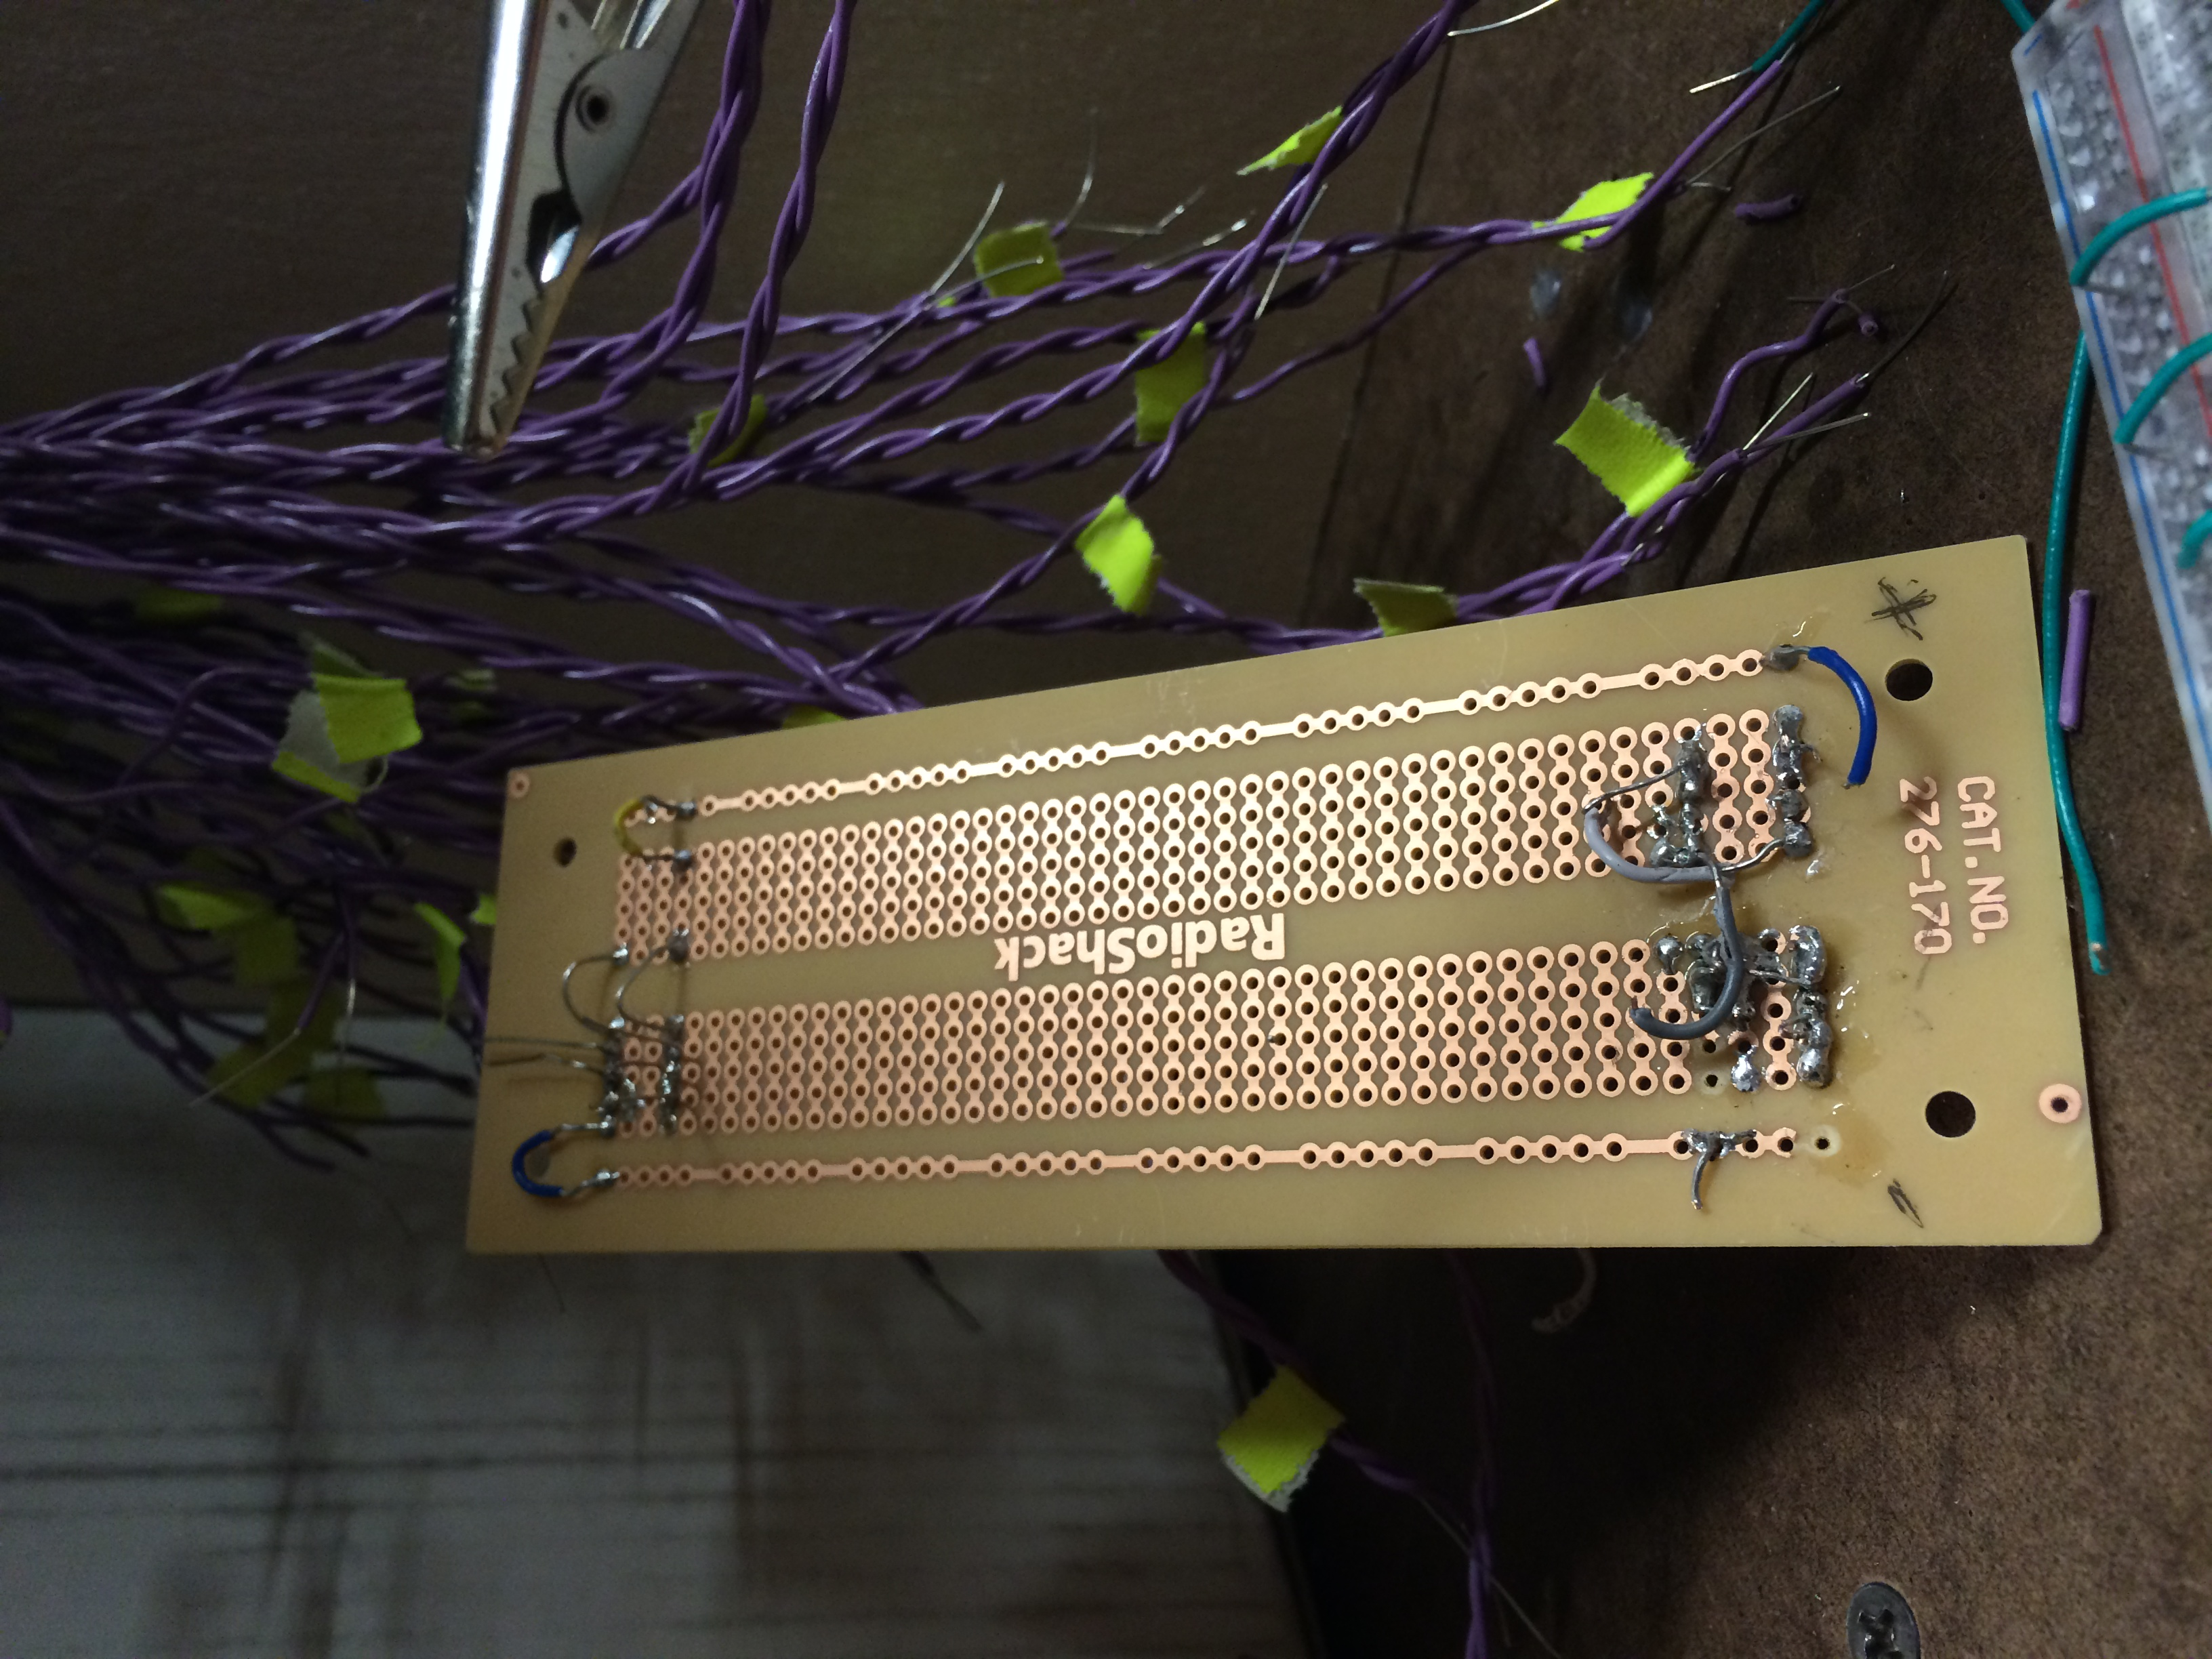 The solderable boards were pretty hard to manage in our case...Eventually we ended up using the most common breadboard and hot-glued all the wires to the points.